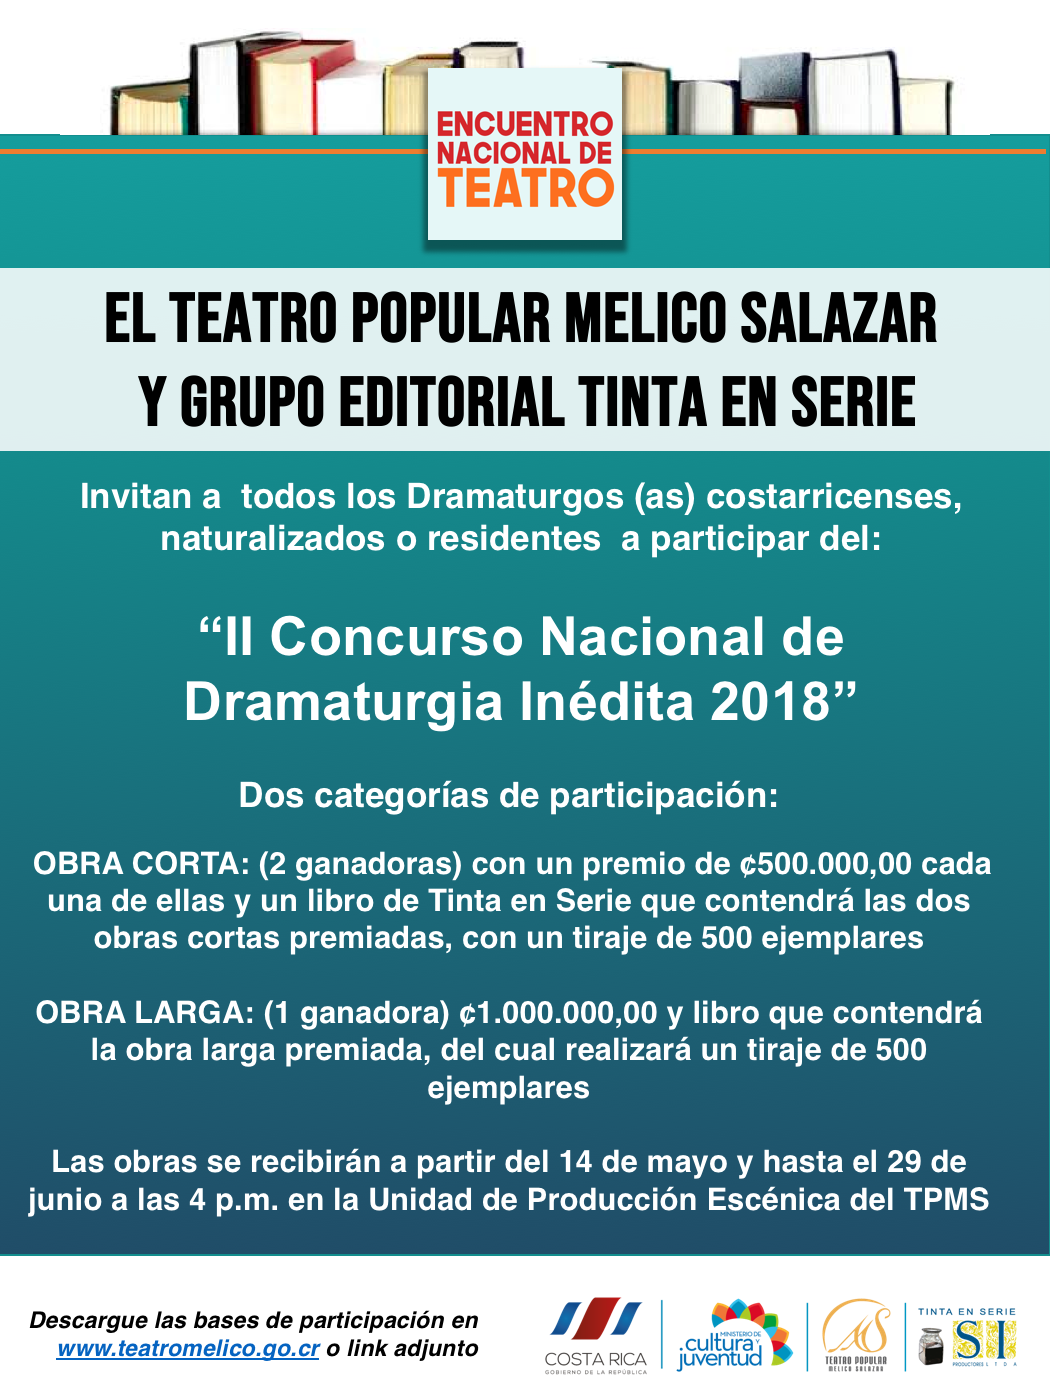 http://teatromelico.go.cr/images/IIConcurso2018.png